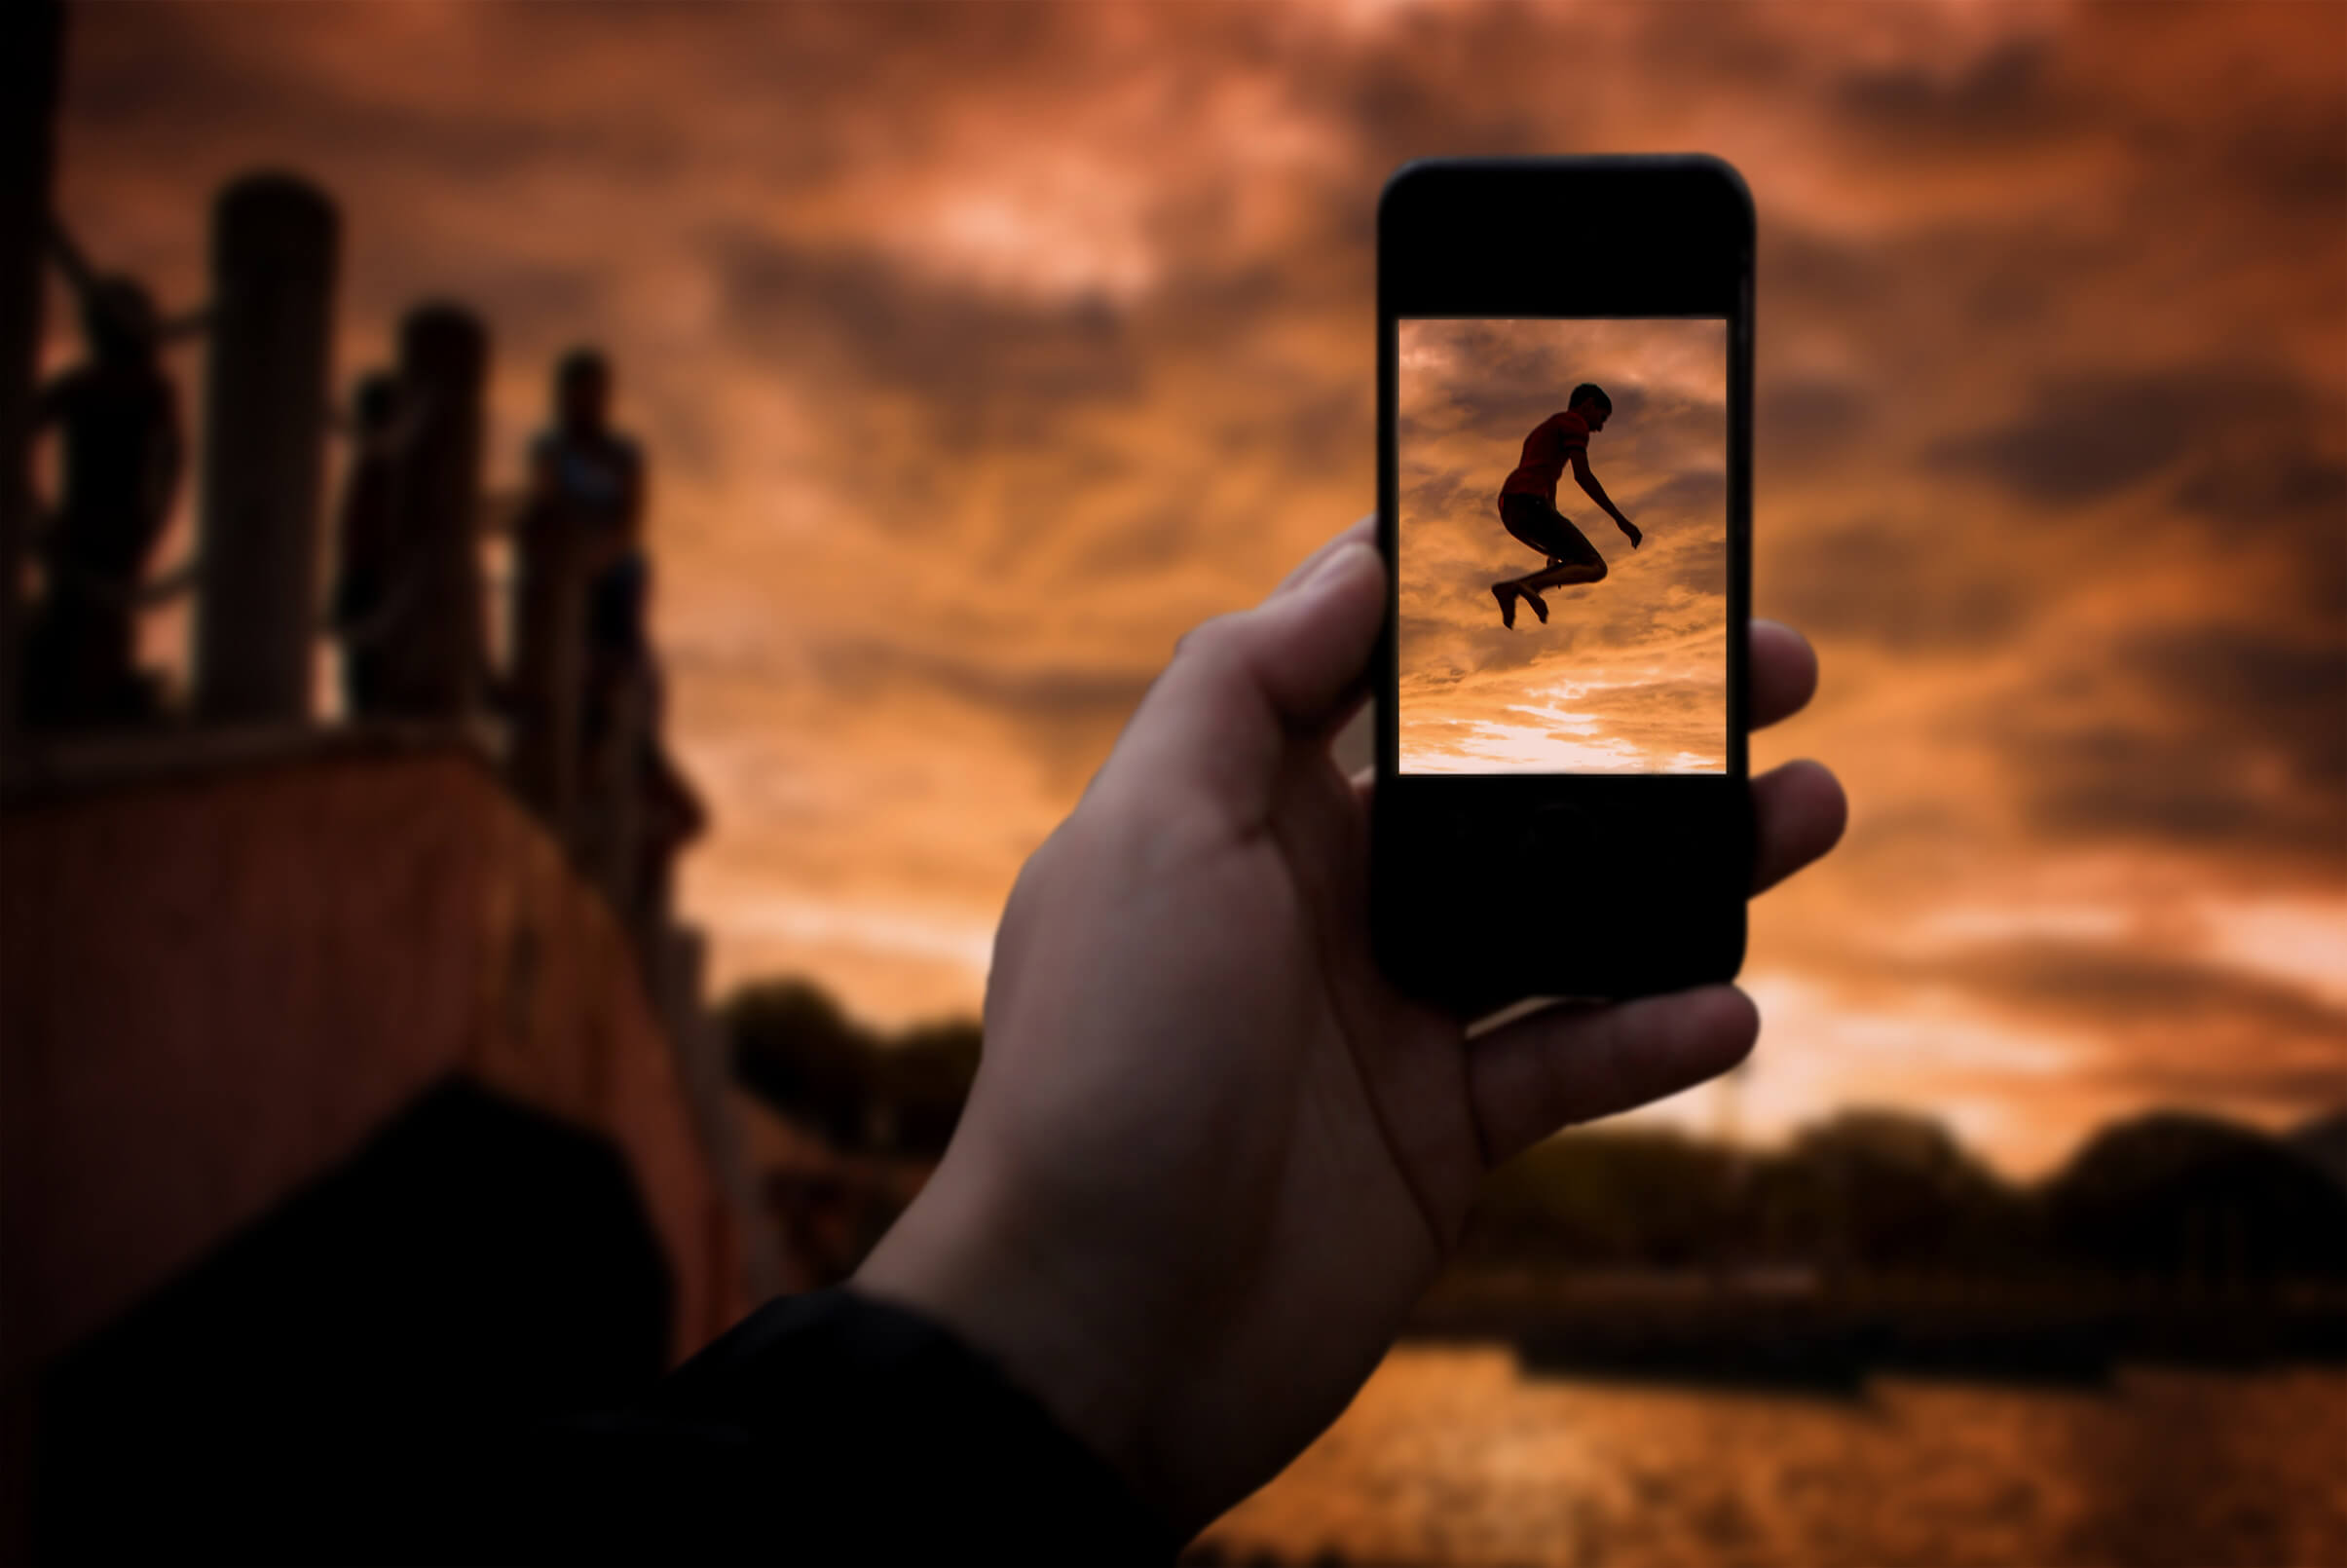 Taking a photo with smartphone - Happy boy jumping into river